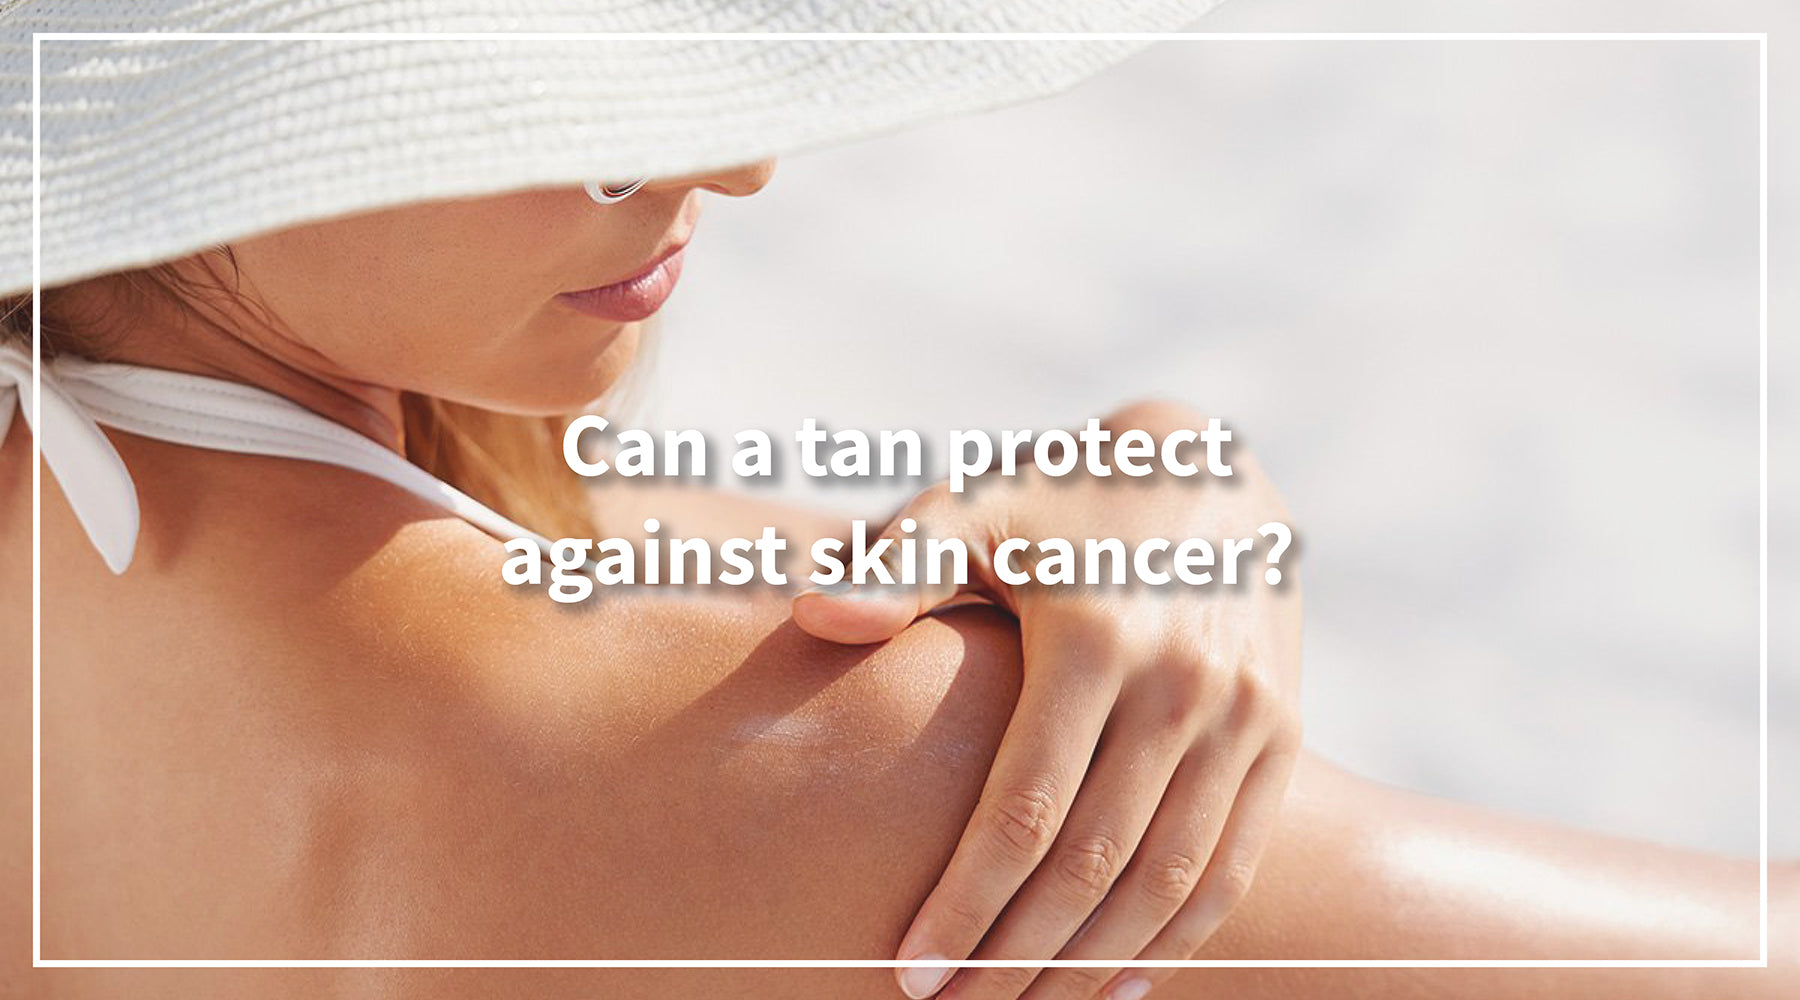 Can a tan protect against skin cancer?